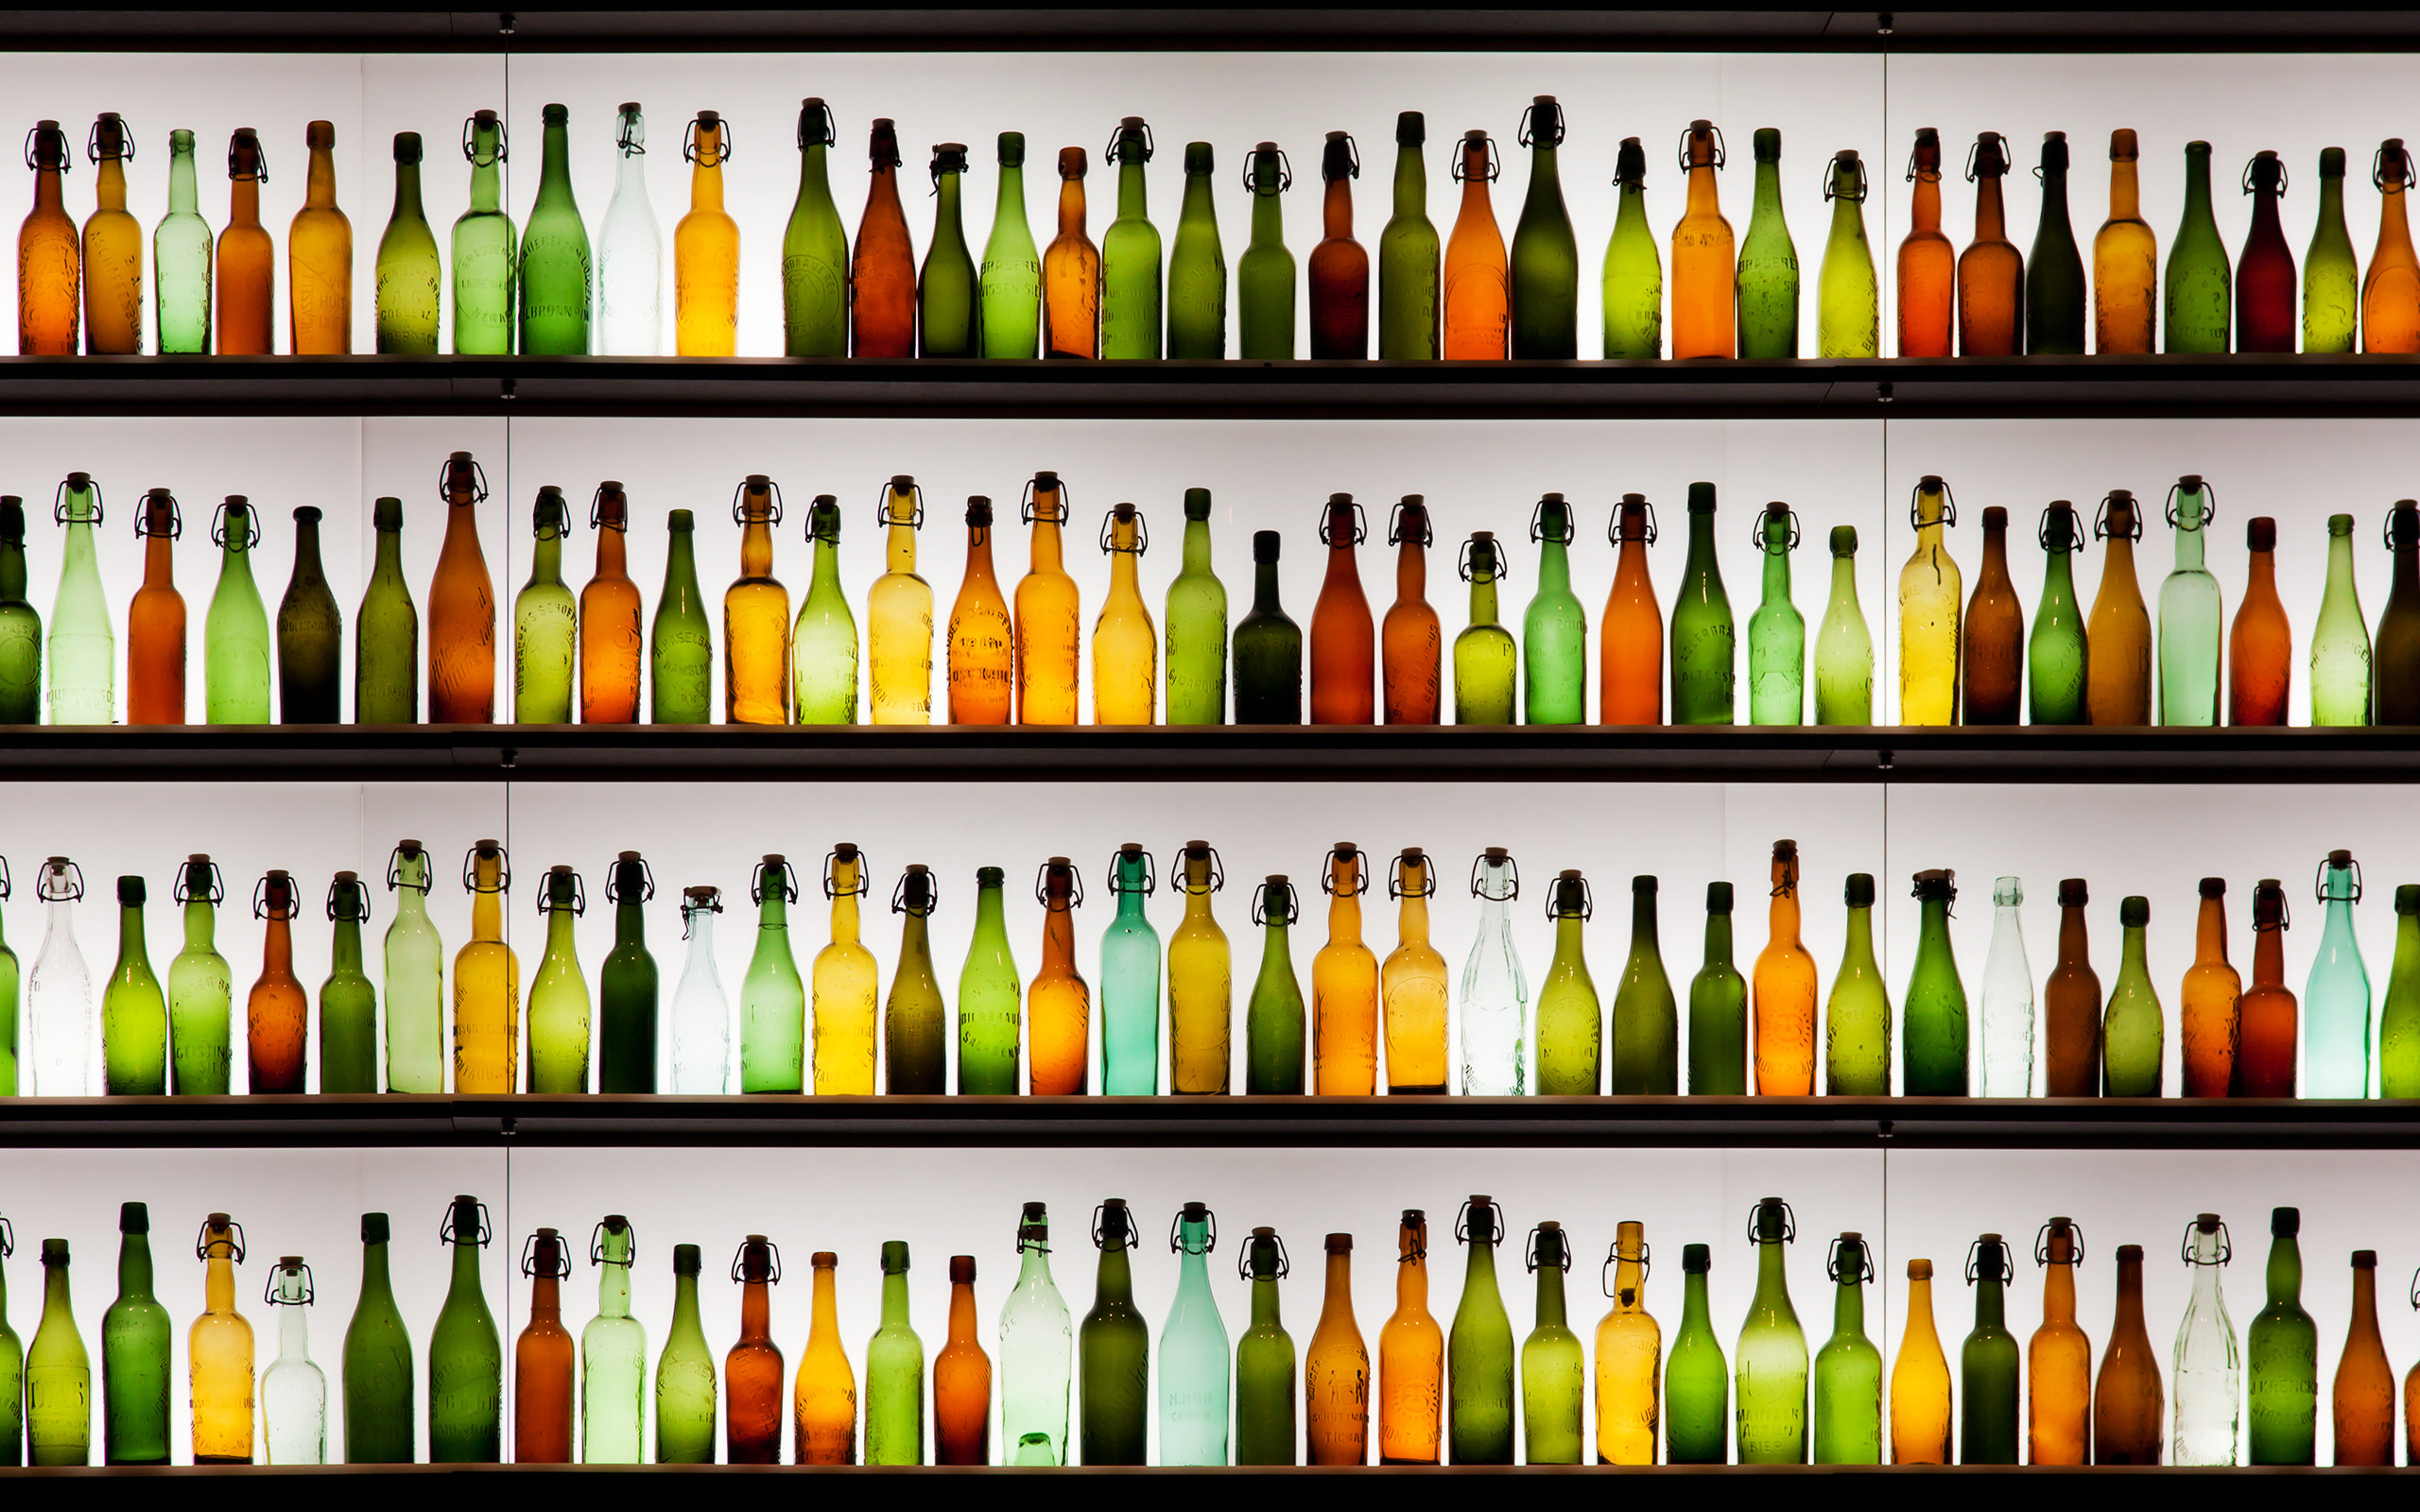 Images and Bottles On The Shelves Wallpapers 2560x1600px